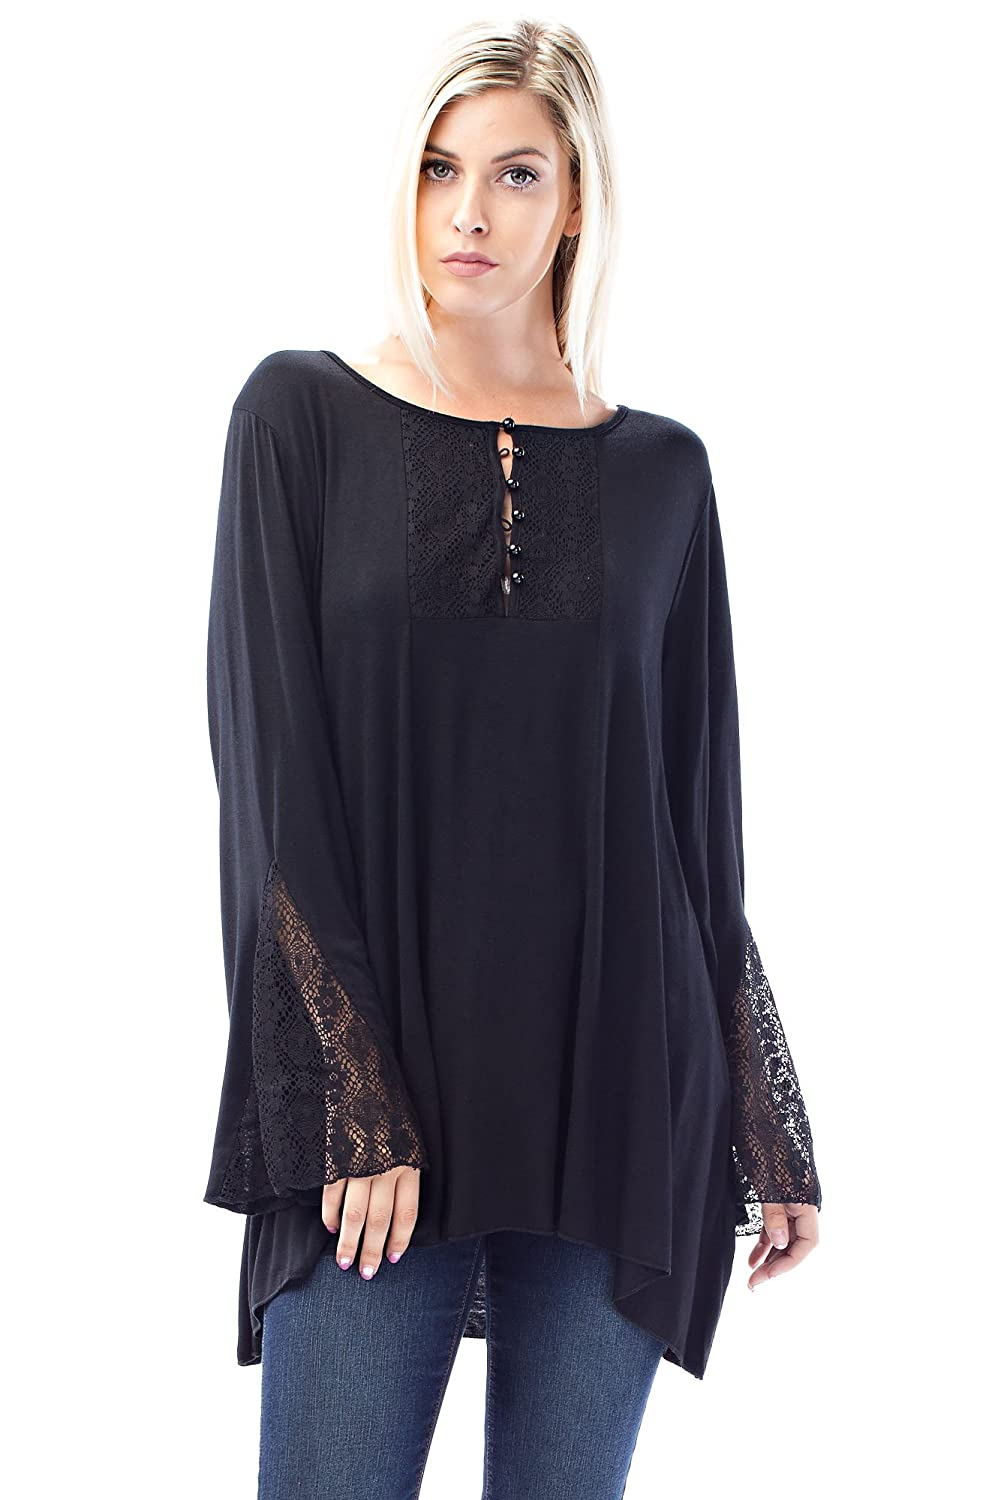 Allora Betsy Red Couture Women's Plus Size Lace Knit Tunic Top P201LX-Red) P201LX-RED-1